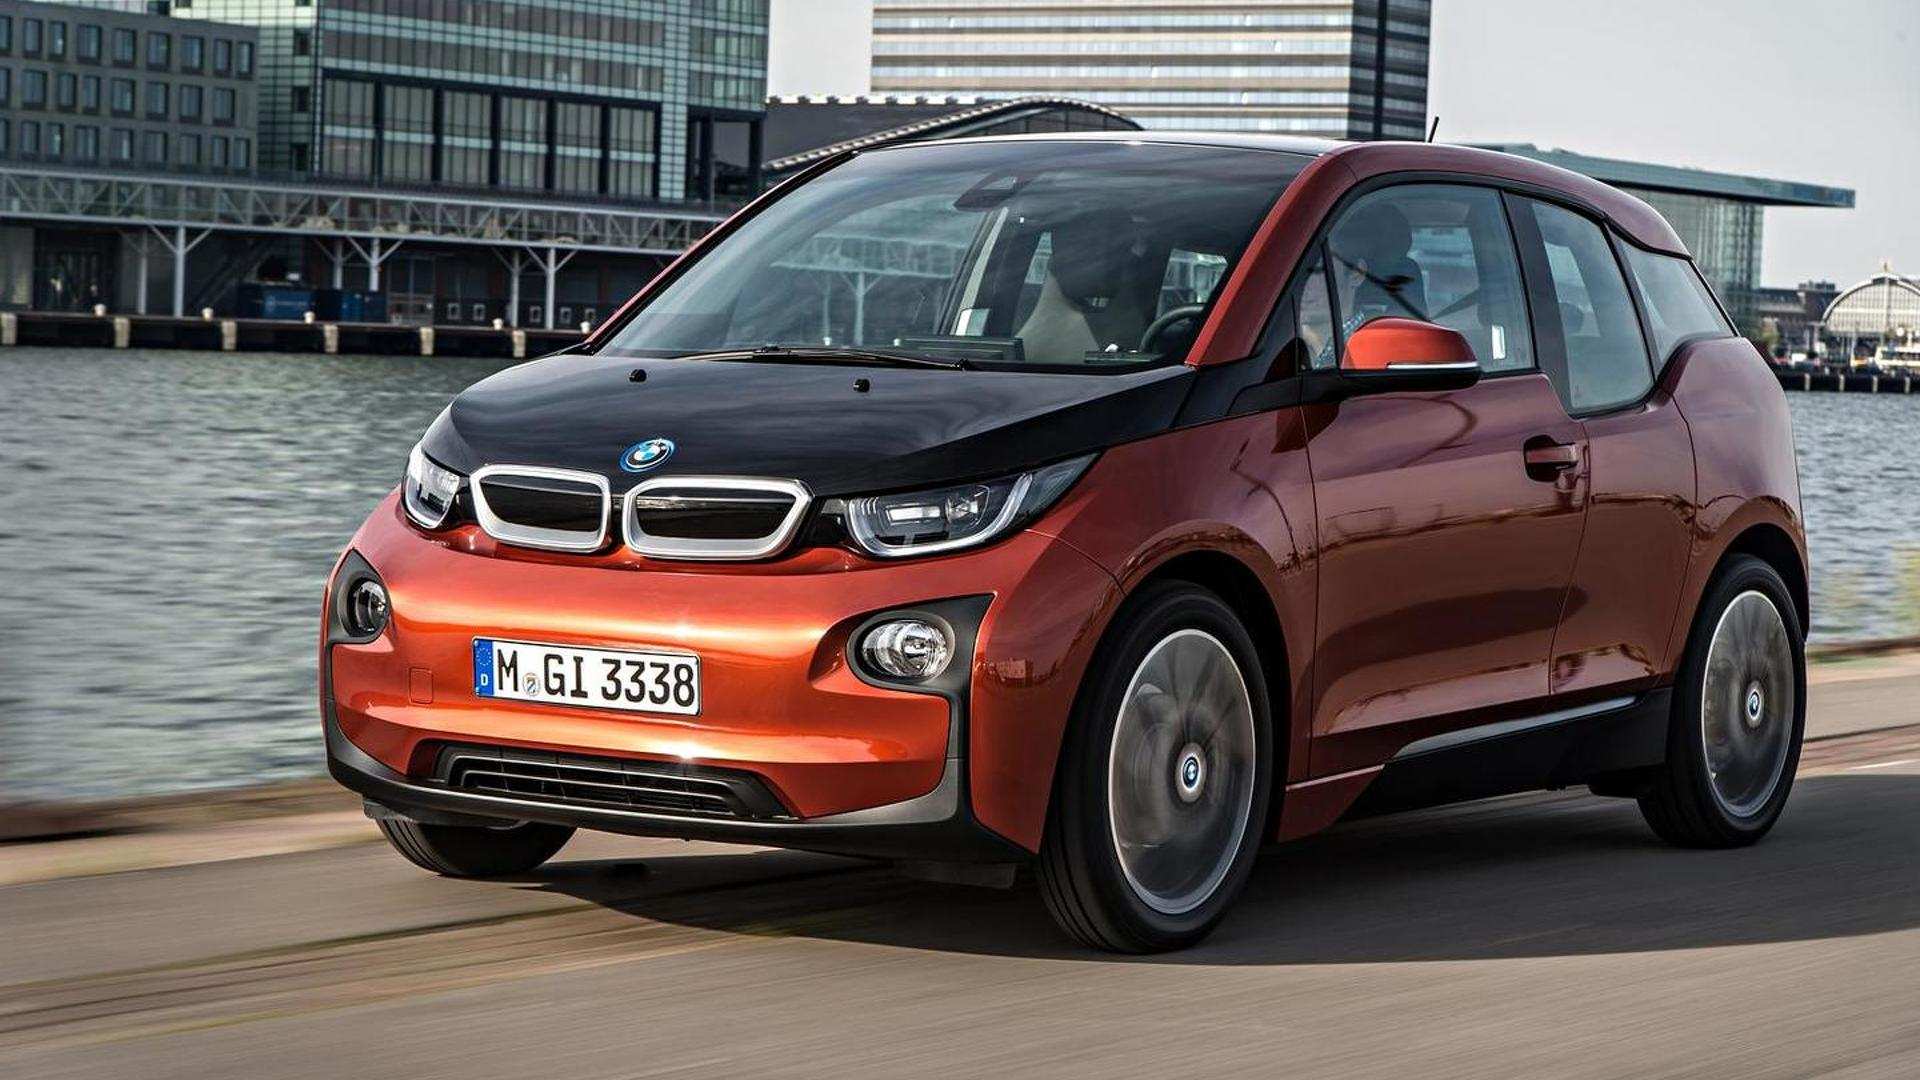 BMW i5 already planned - report